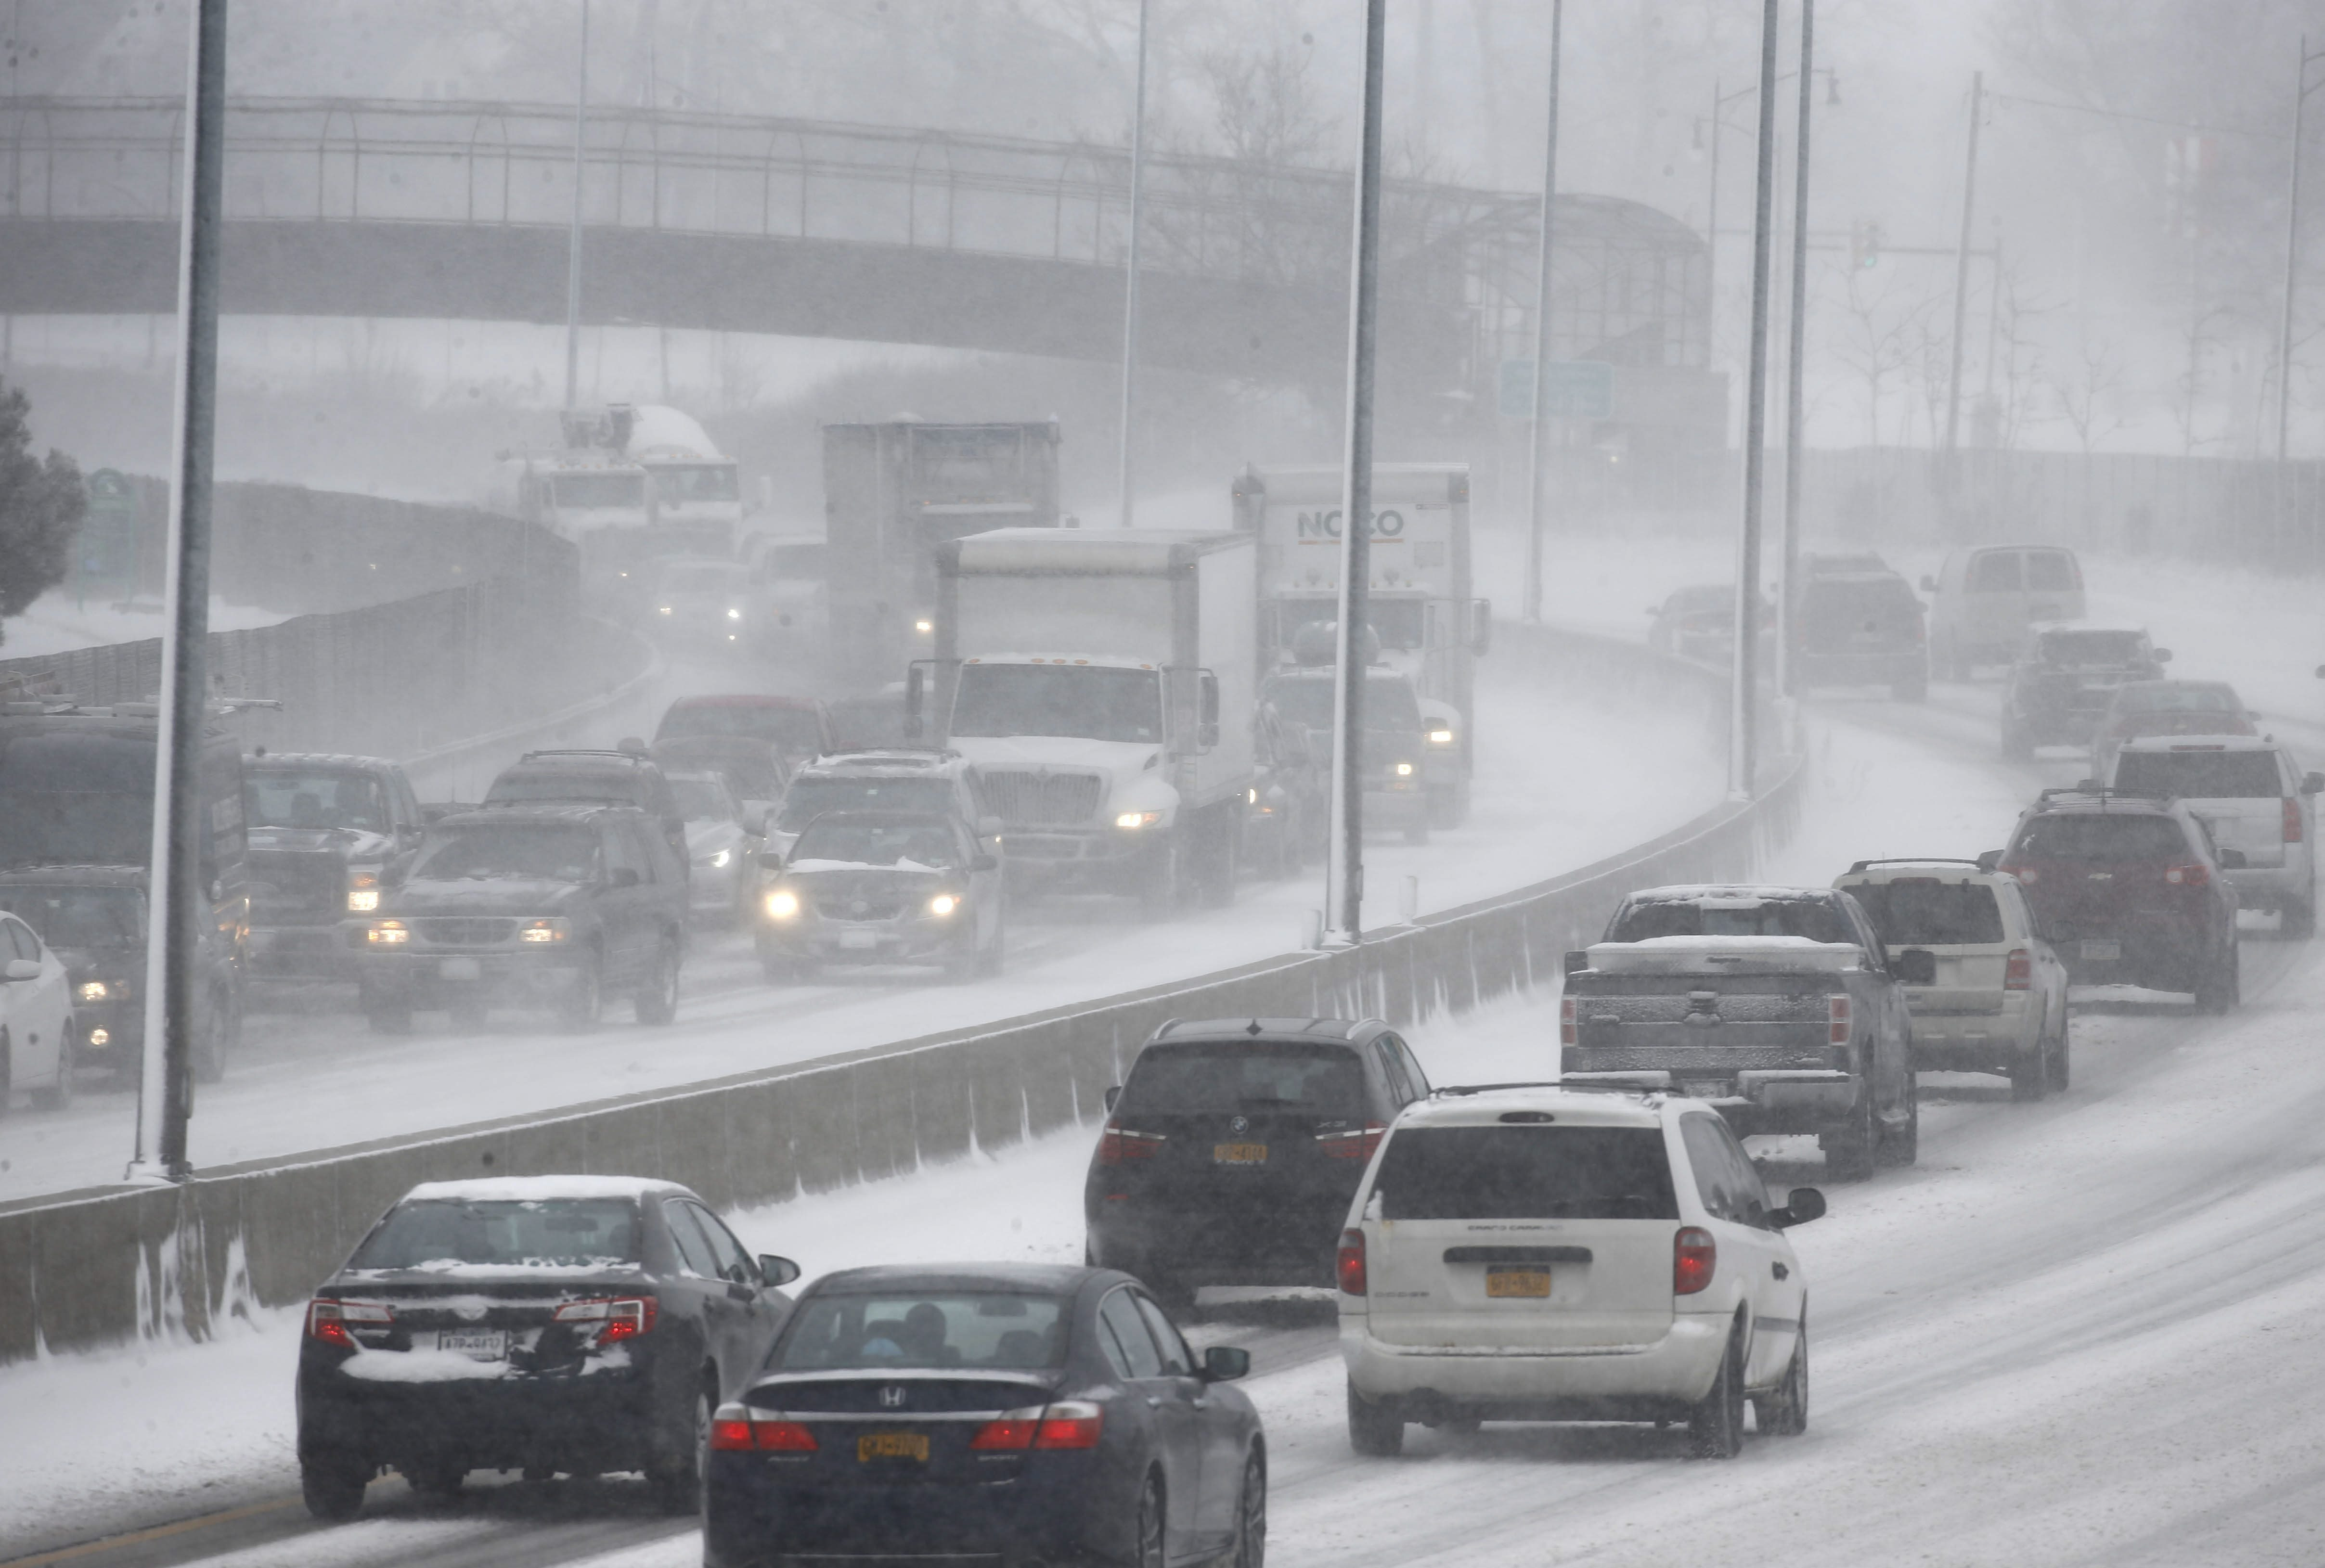 Traffic is expected to be slow Tuesday, similar to like it was last Friday, as heavy snow should blanket the area from early morning until the evening hours. (Derek Gee/Buffalo News)